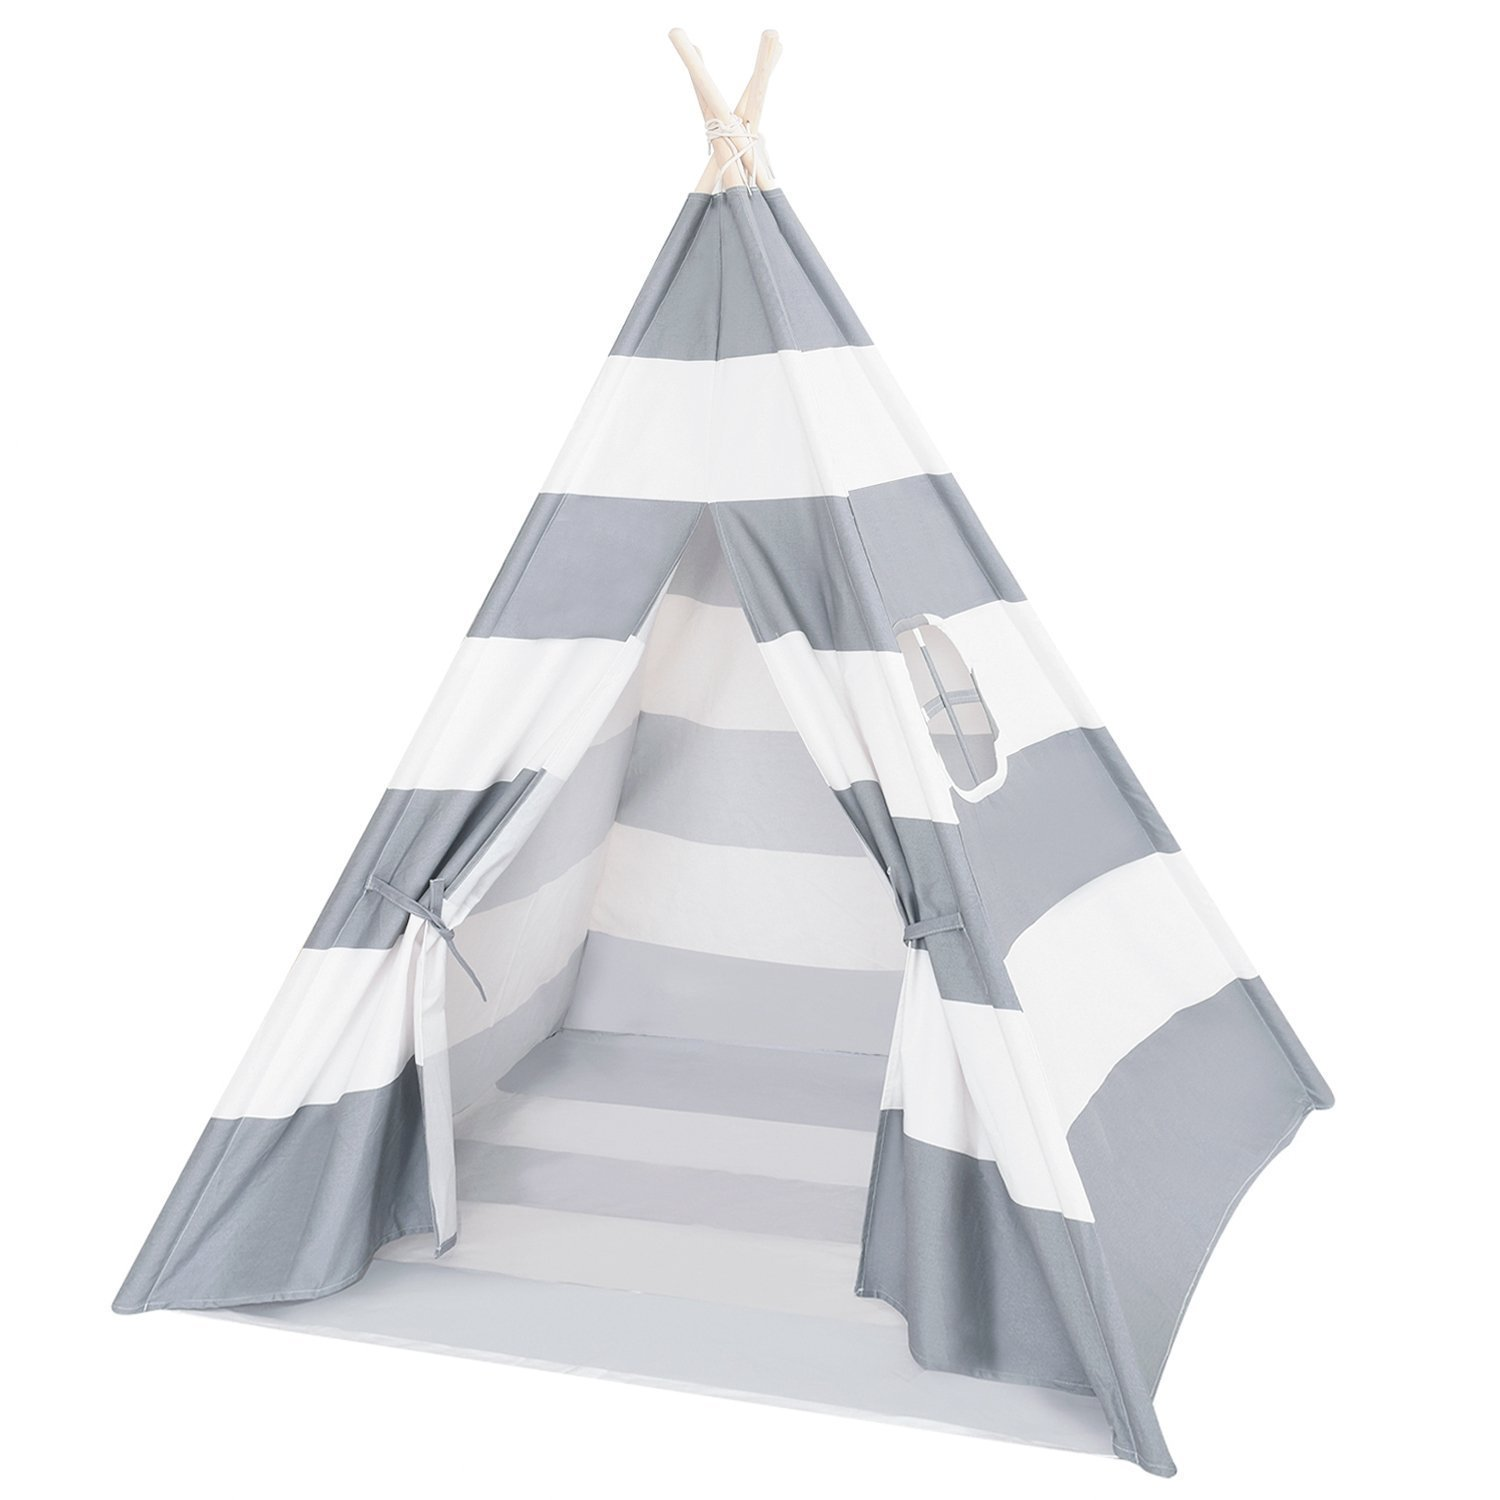 DalosDream Teepee Tent For Kids-100% Natural Cotton Canvas Children Tent-Grey Striped by